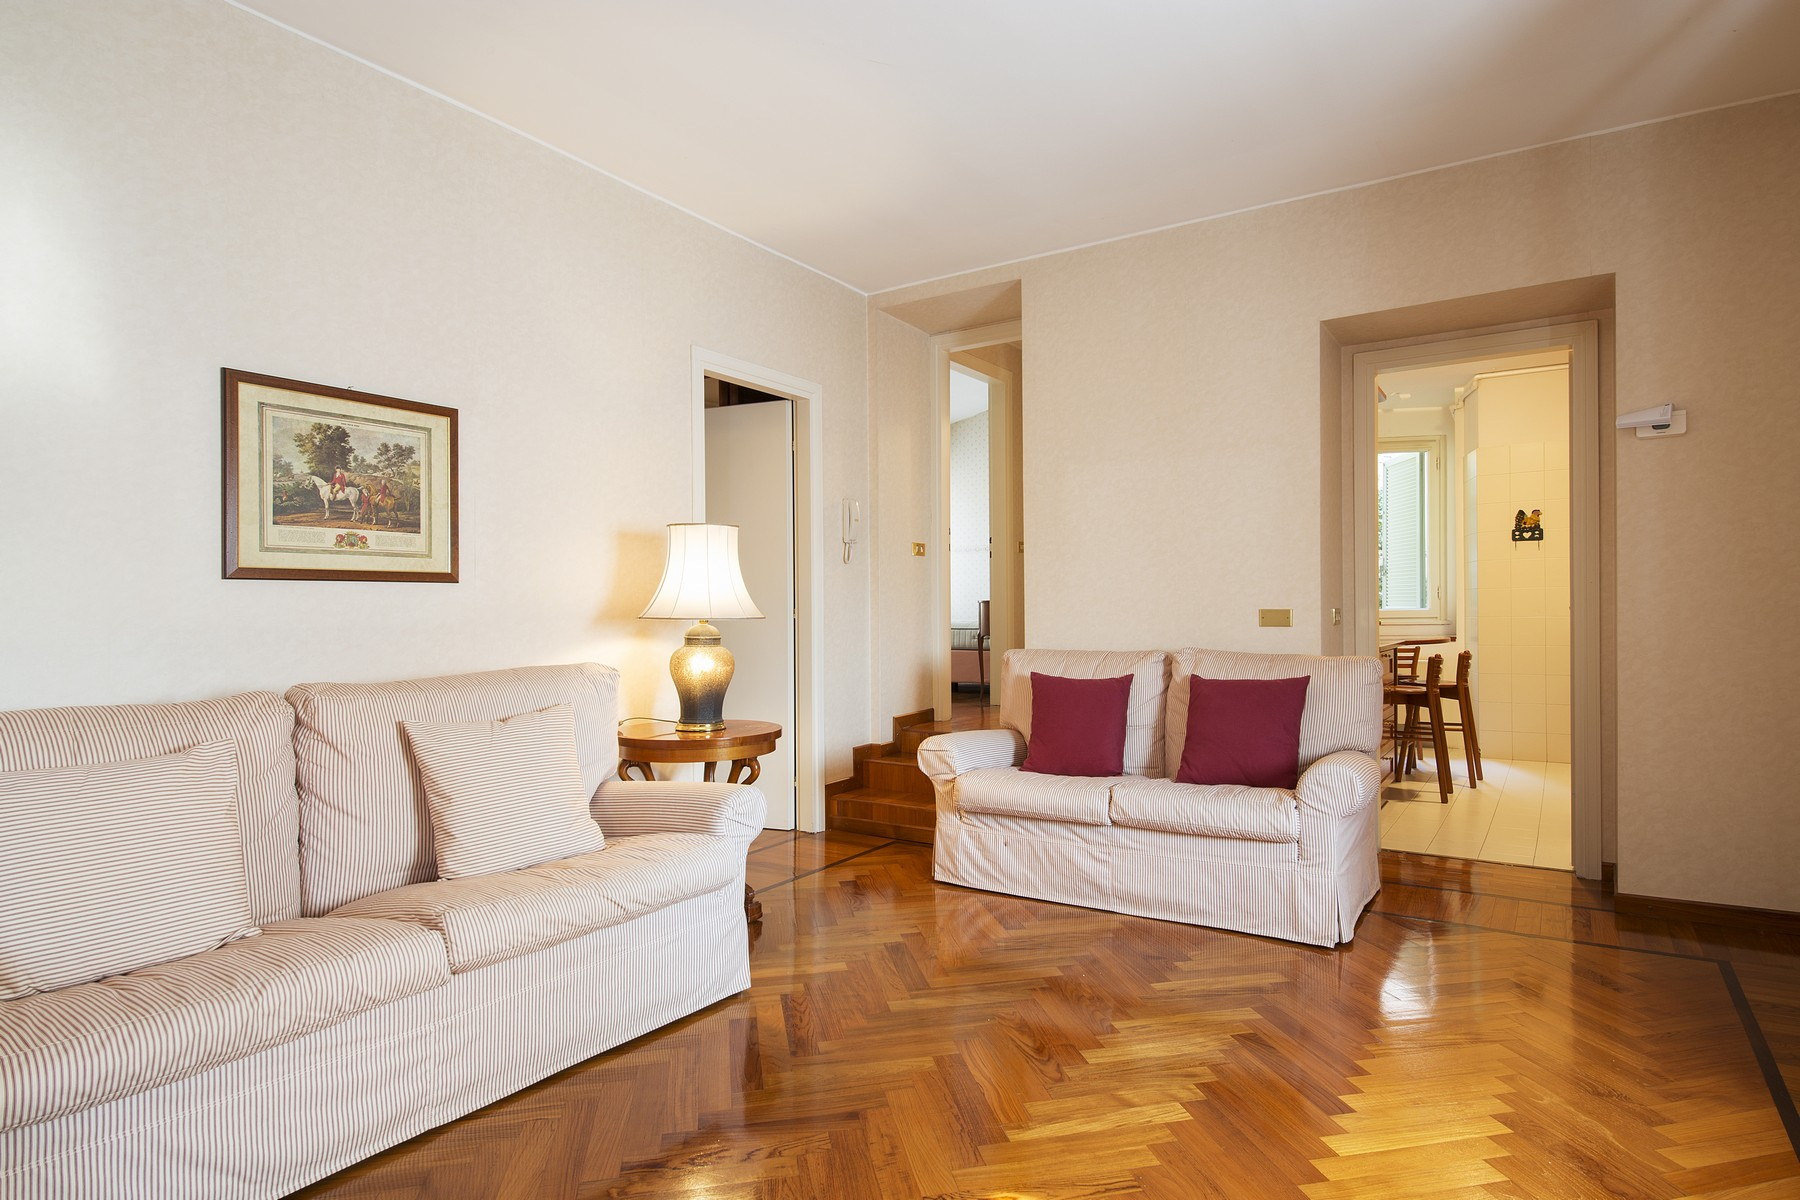 Additional photo for property listing at Elegant apartment in Villa Taverna via Roma Torno, Como 22020 Italy